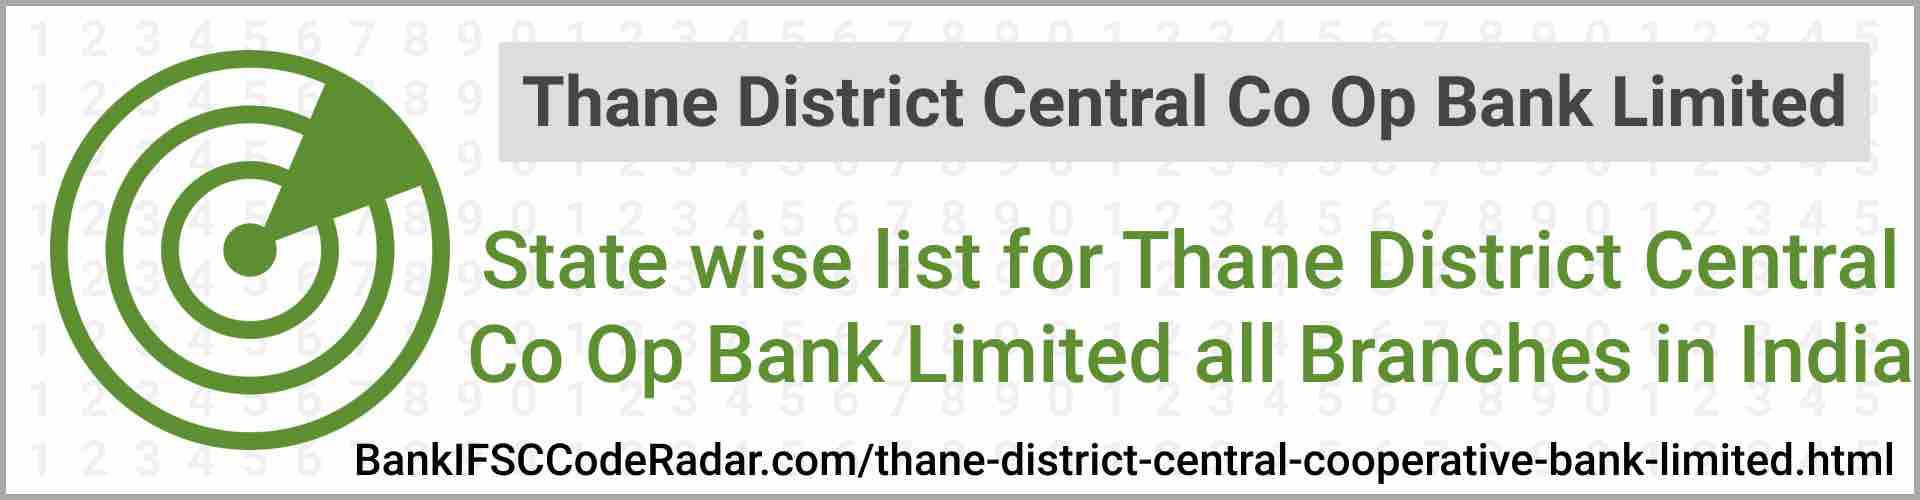 Thane District Central Cooperative Bank Limited All Branches India